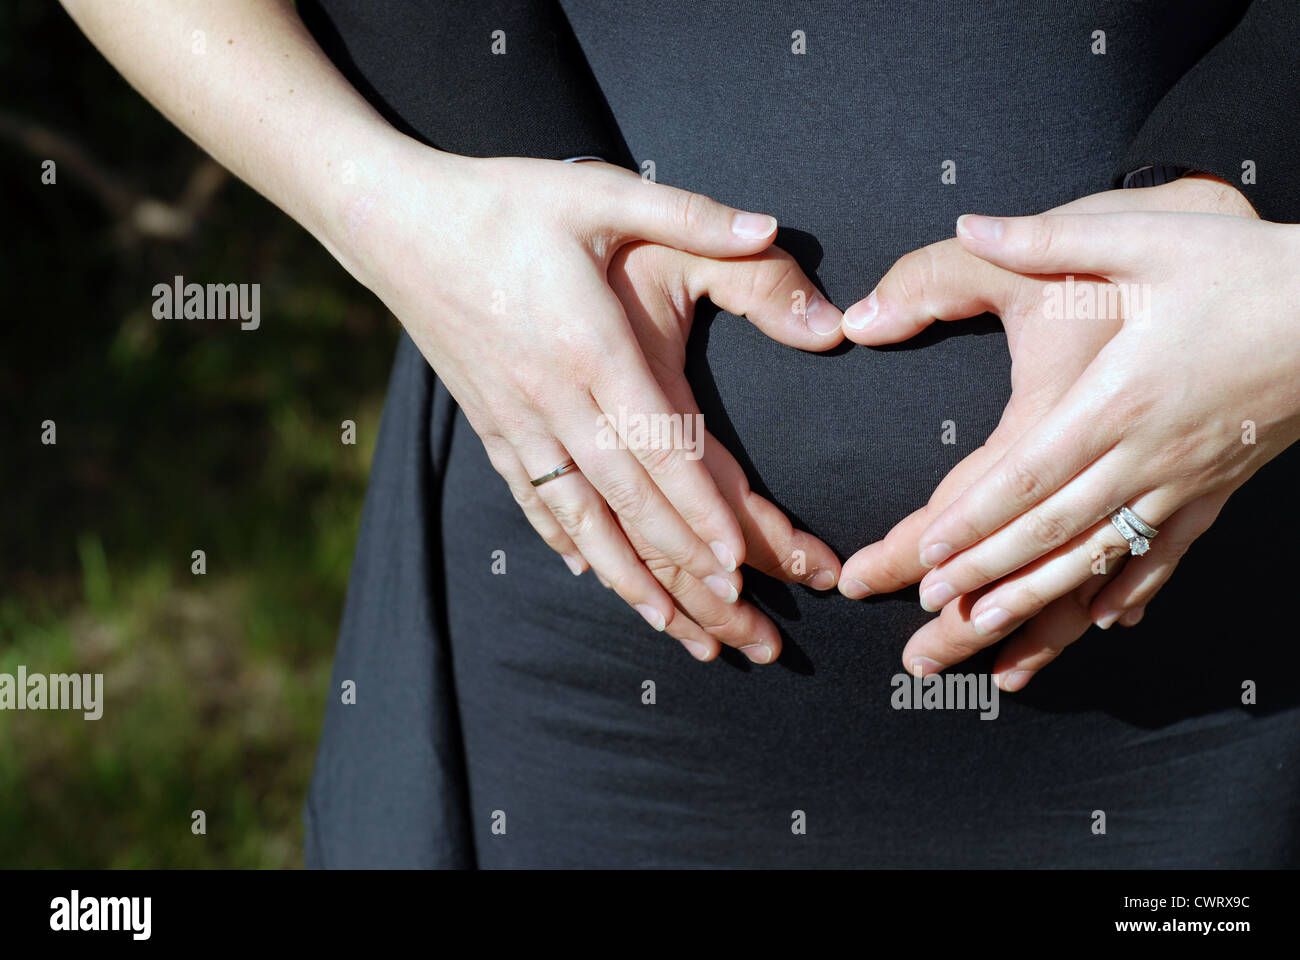 Sorry, heart hands on pregnant belly apologise, but